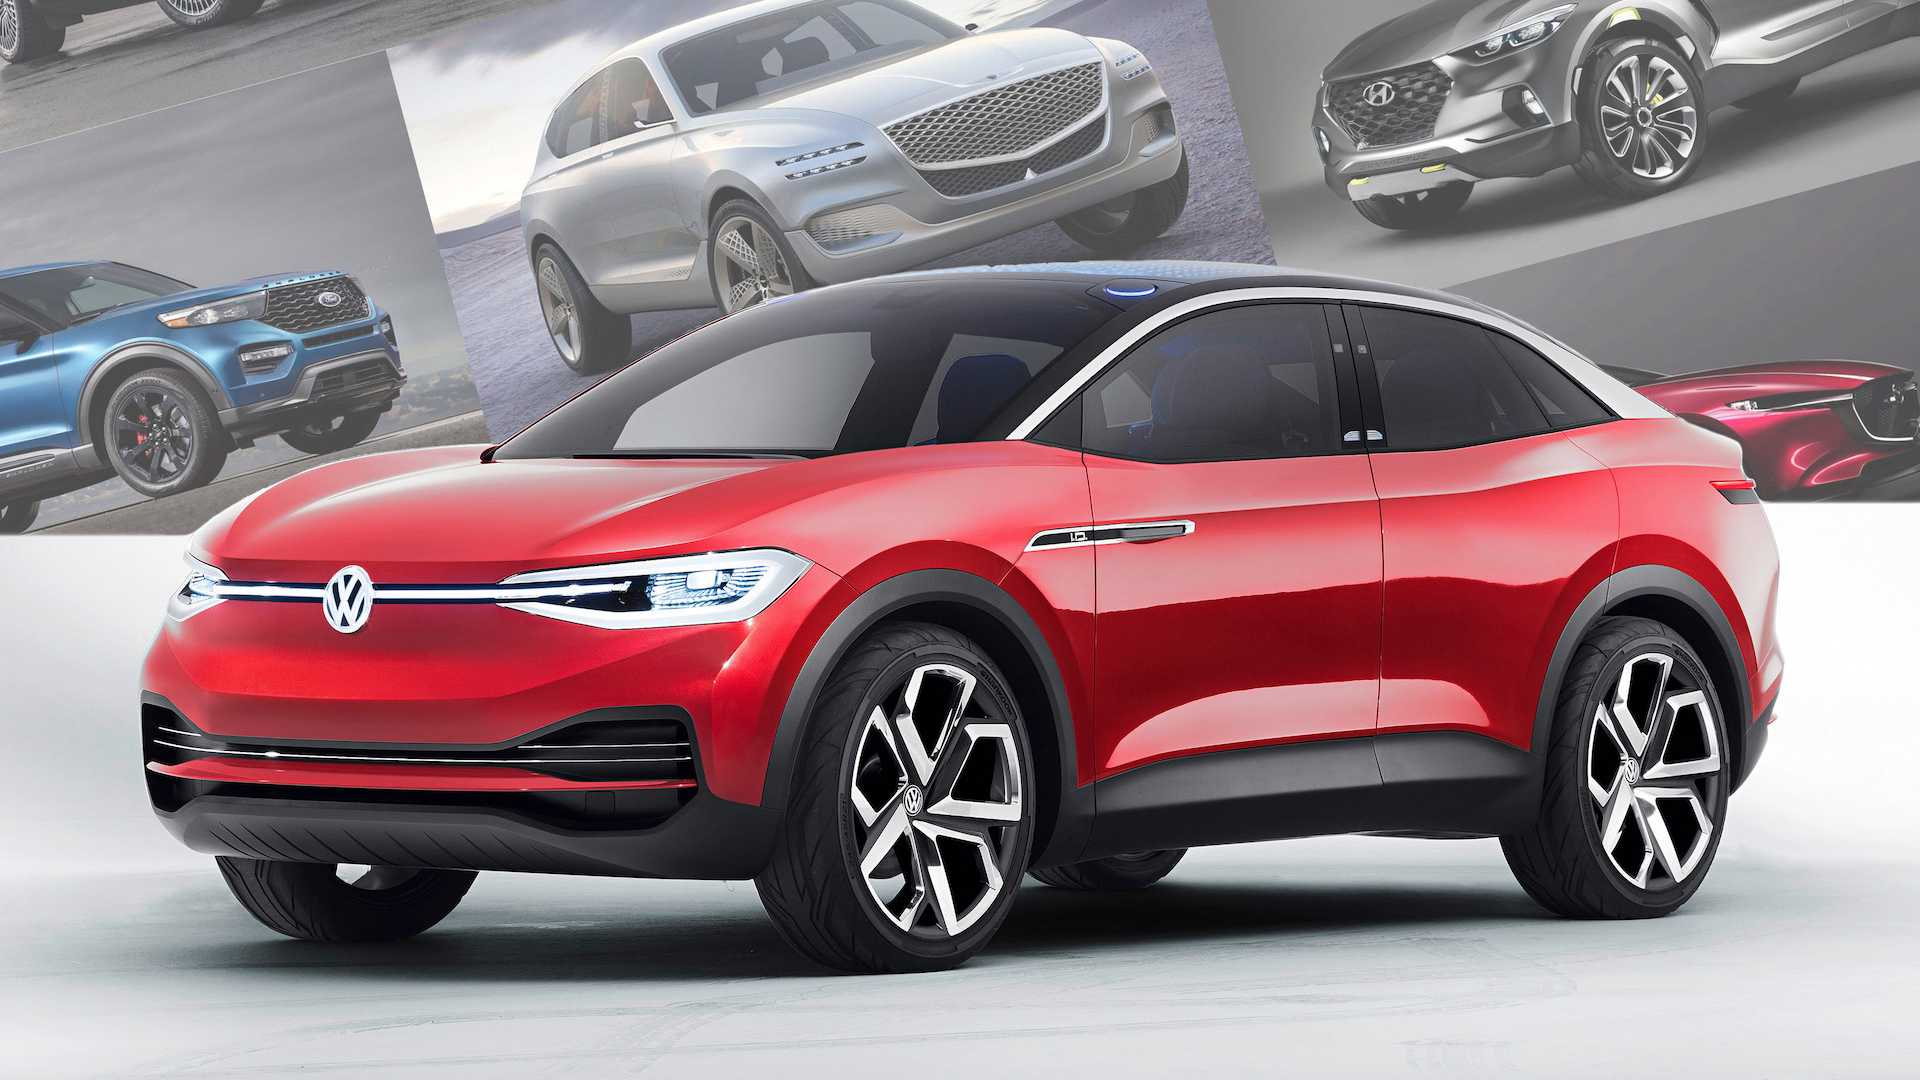 58 All New 2020 Vw Models Engine